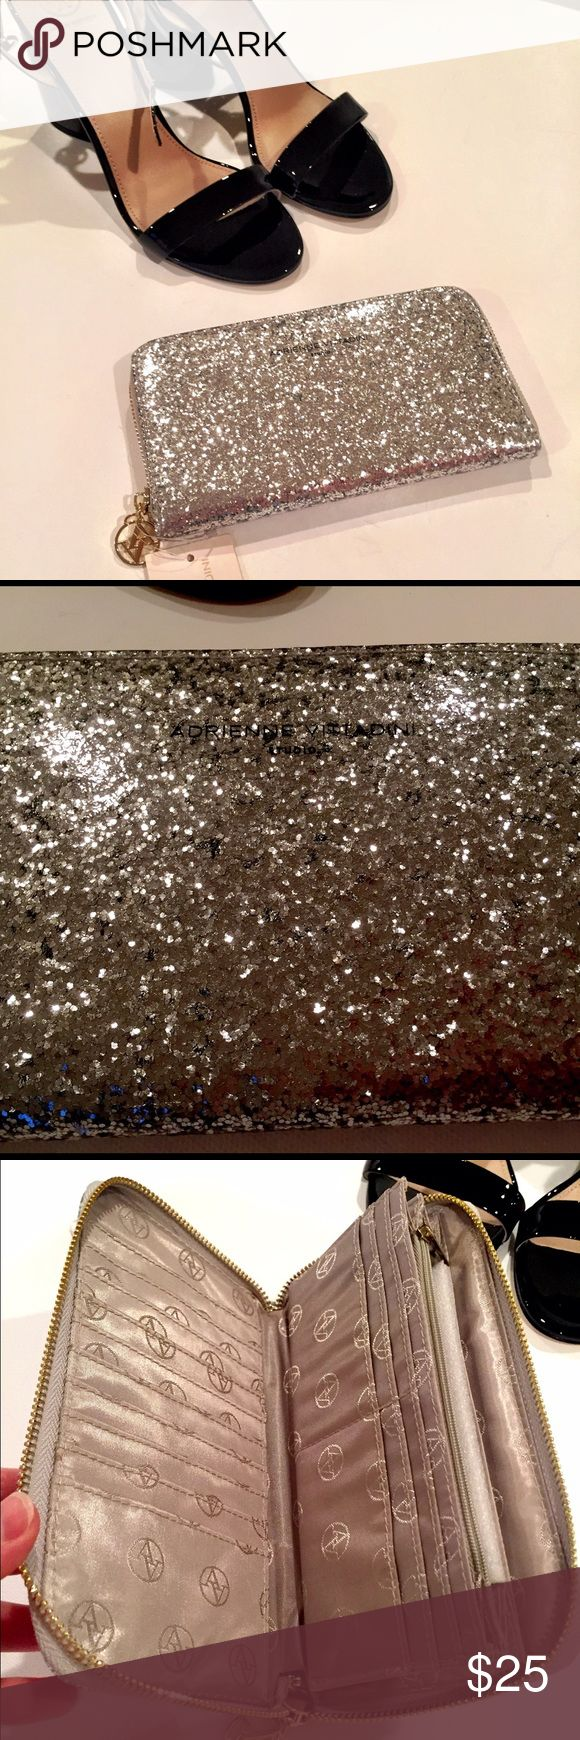 Adrienne Vittadini Glitter Wallet Business or Pleasure this slightly glamorous wallet will keep you looking sophisticated and practical! Brand New with tags! Adrienne Vittadini Bags Wallets